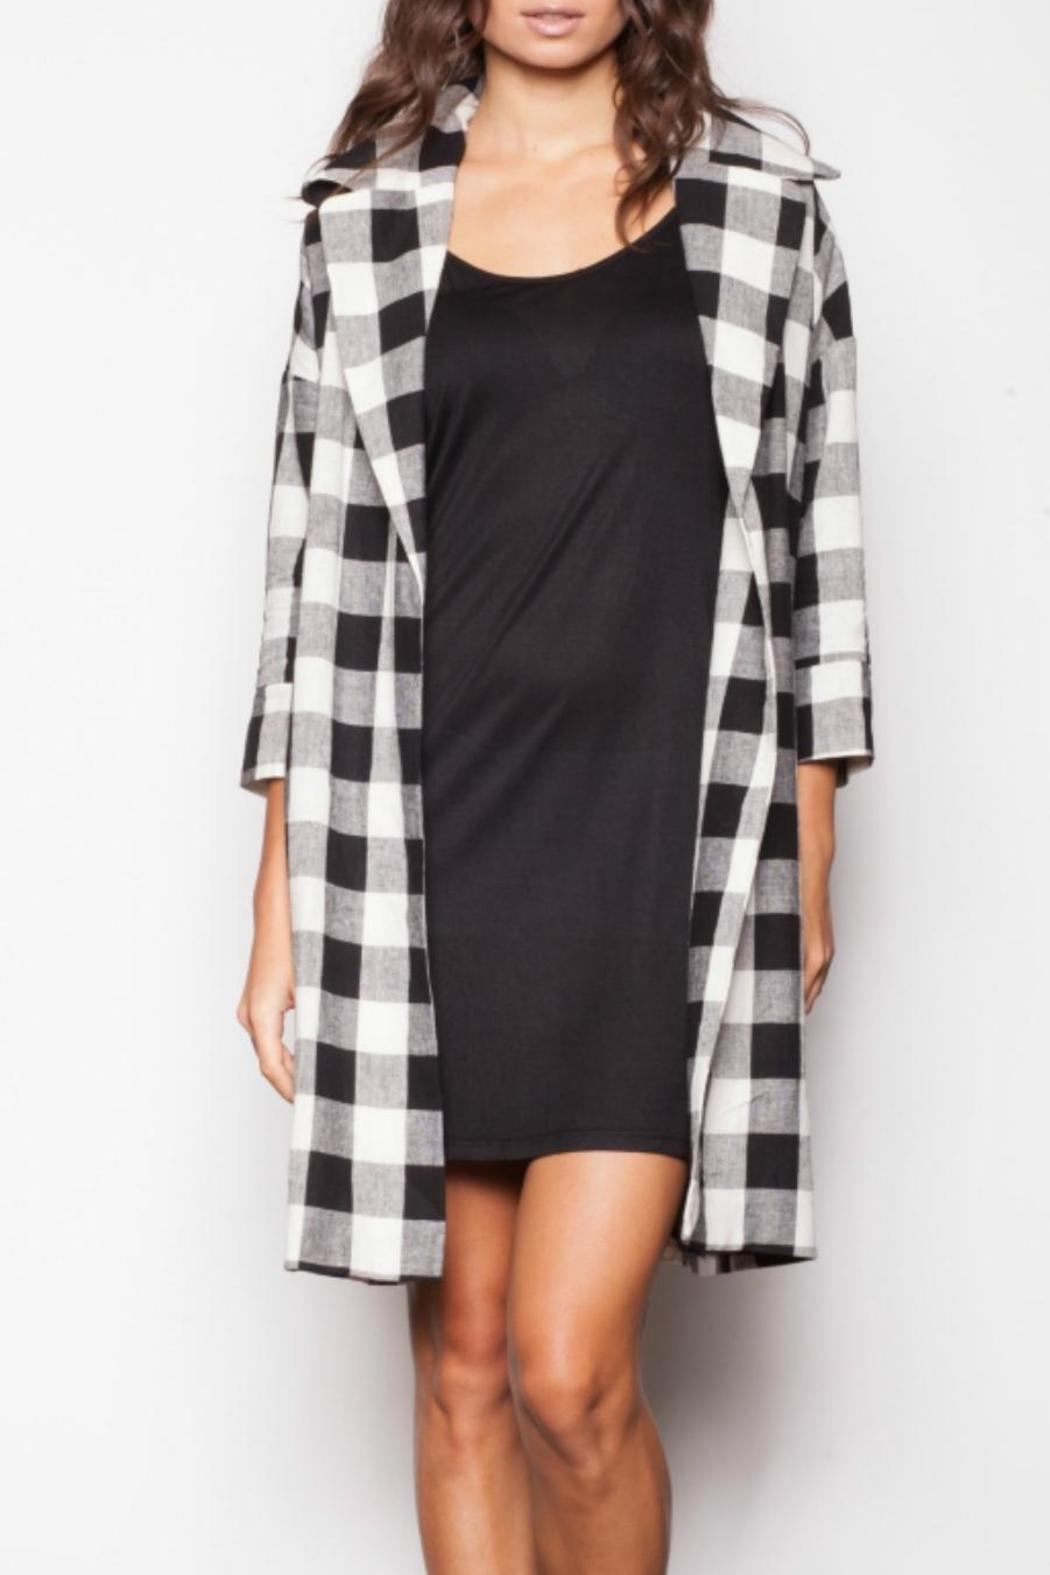 Pink Martini Plaid Trench Coat from Canada by Belle's Boutique ...